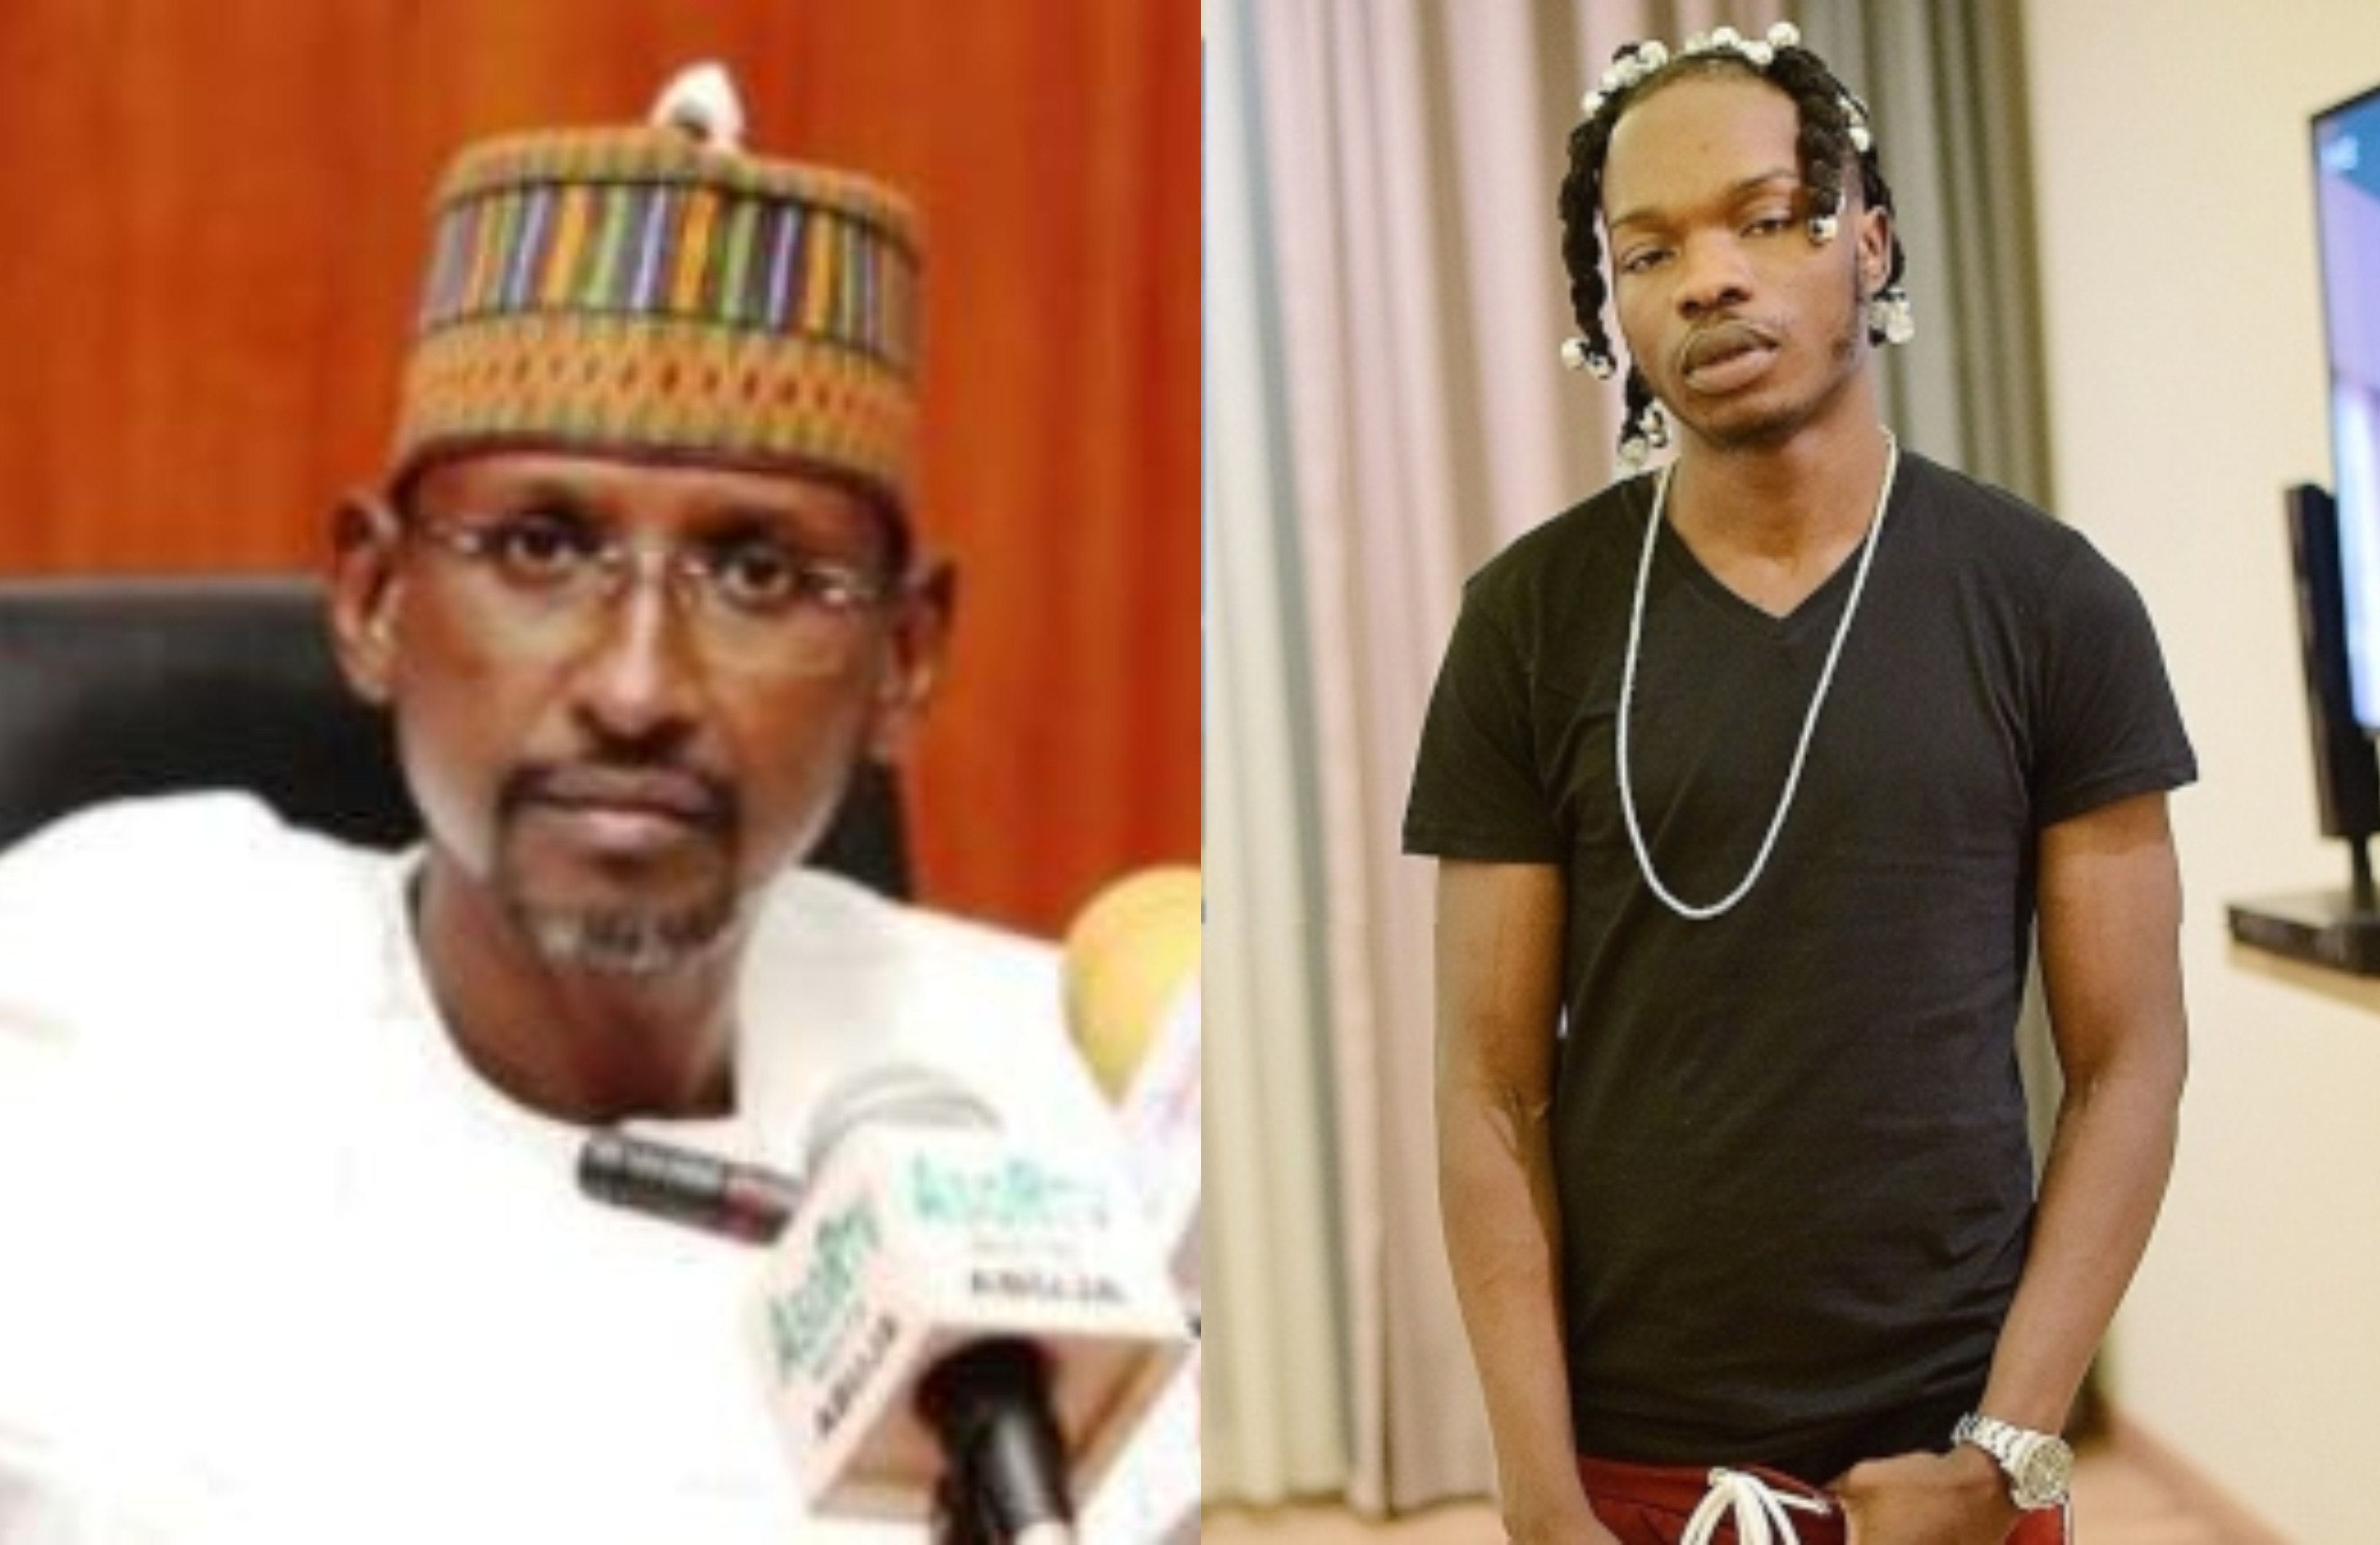 FCT minister to prosecute Naira Marley and others over concert lindaikejisblog